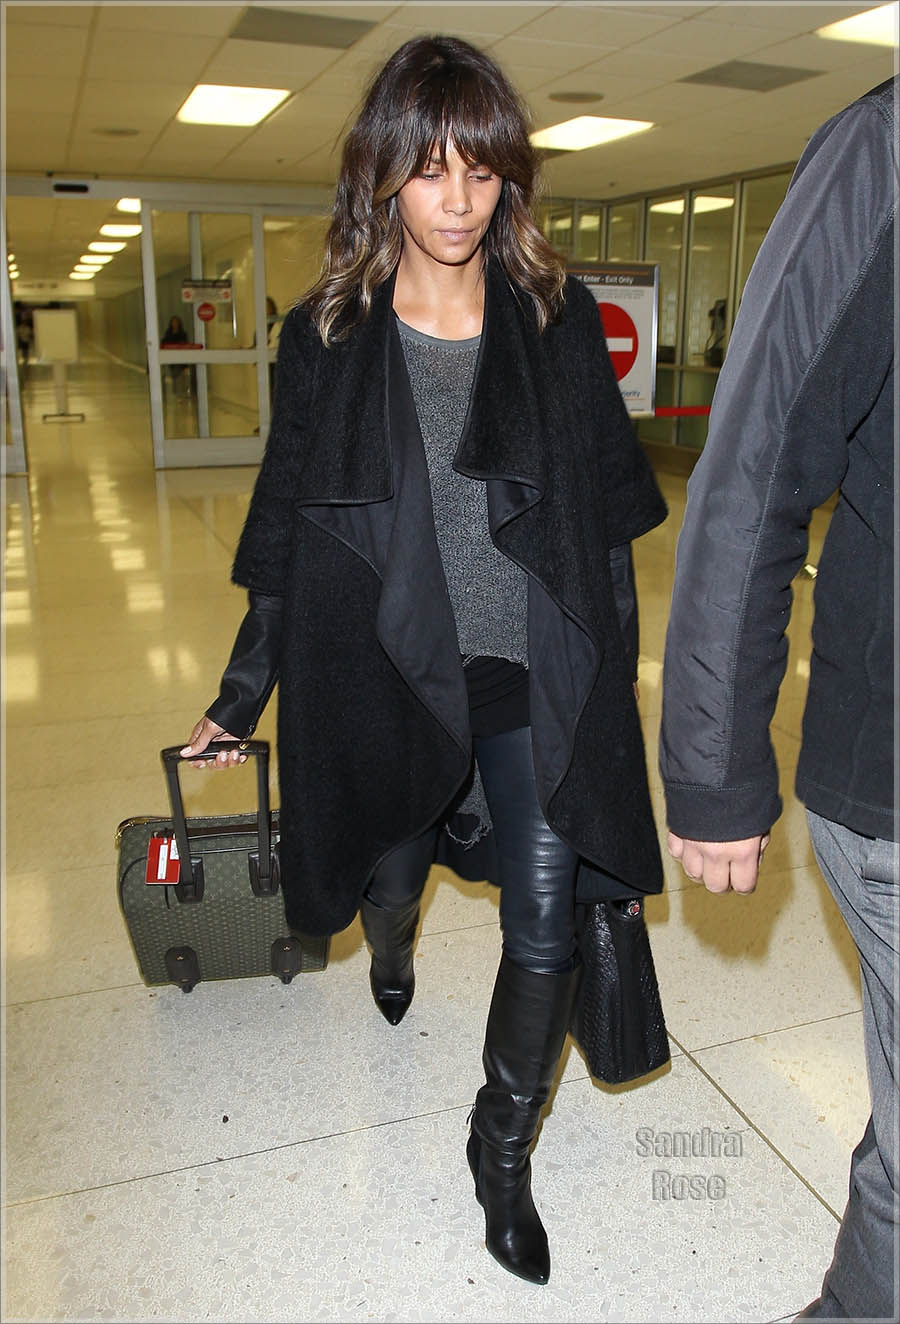 Halle Berry arrives at Los Angeles International (LAX) Airport